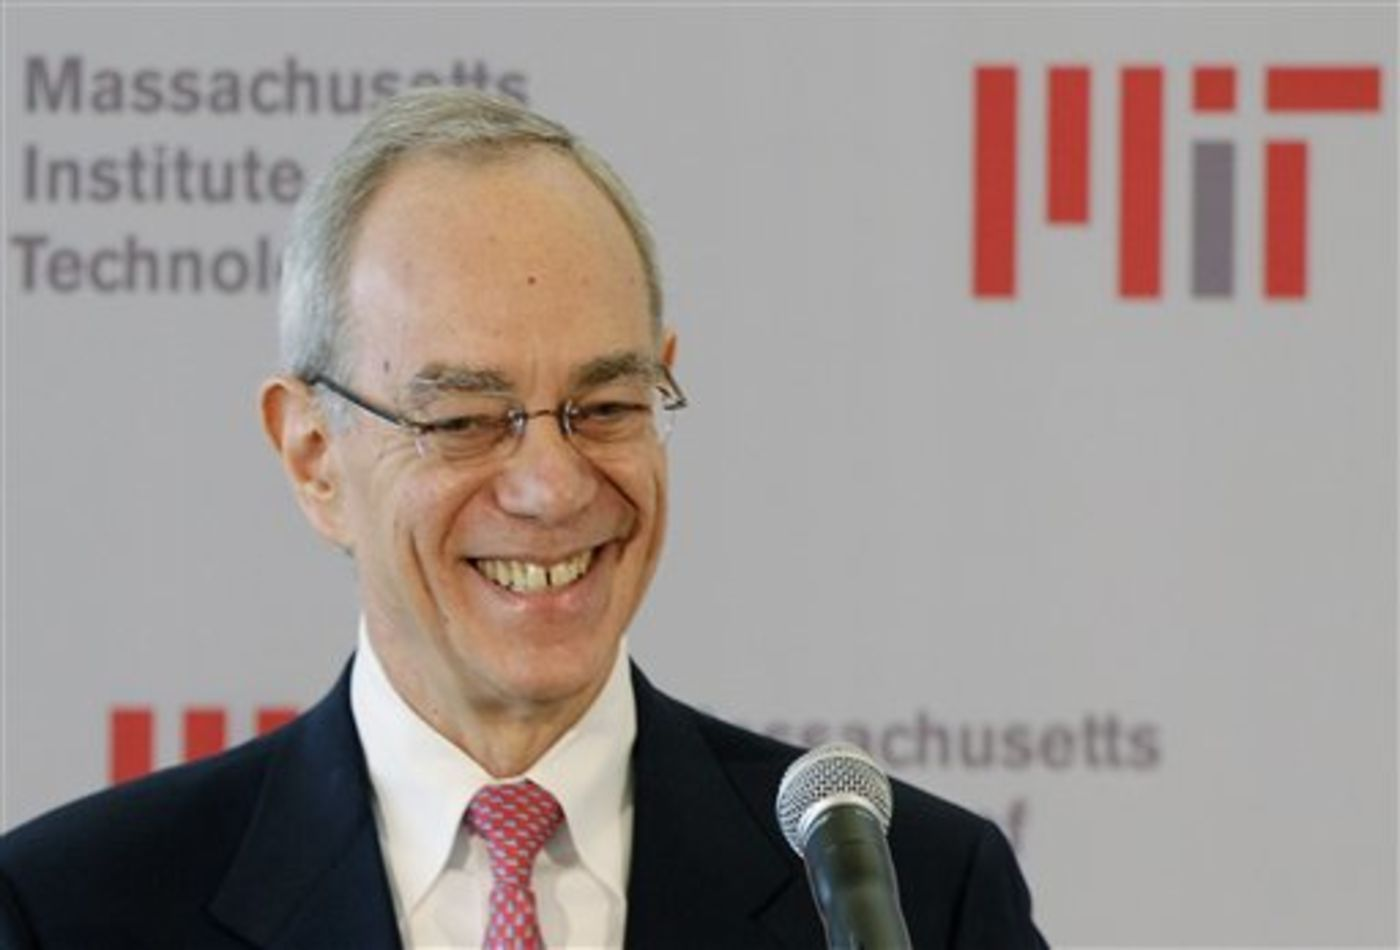 MIT president warns 'toxic atmosphere' for Chinese ethnicity will hurt US